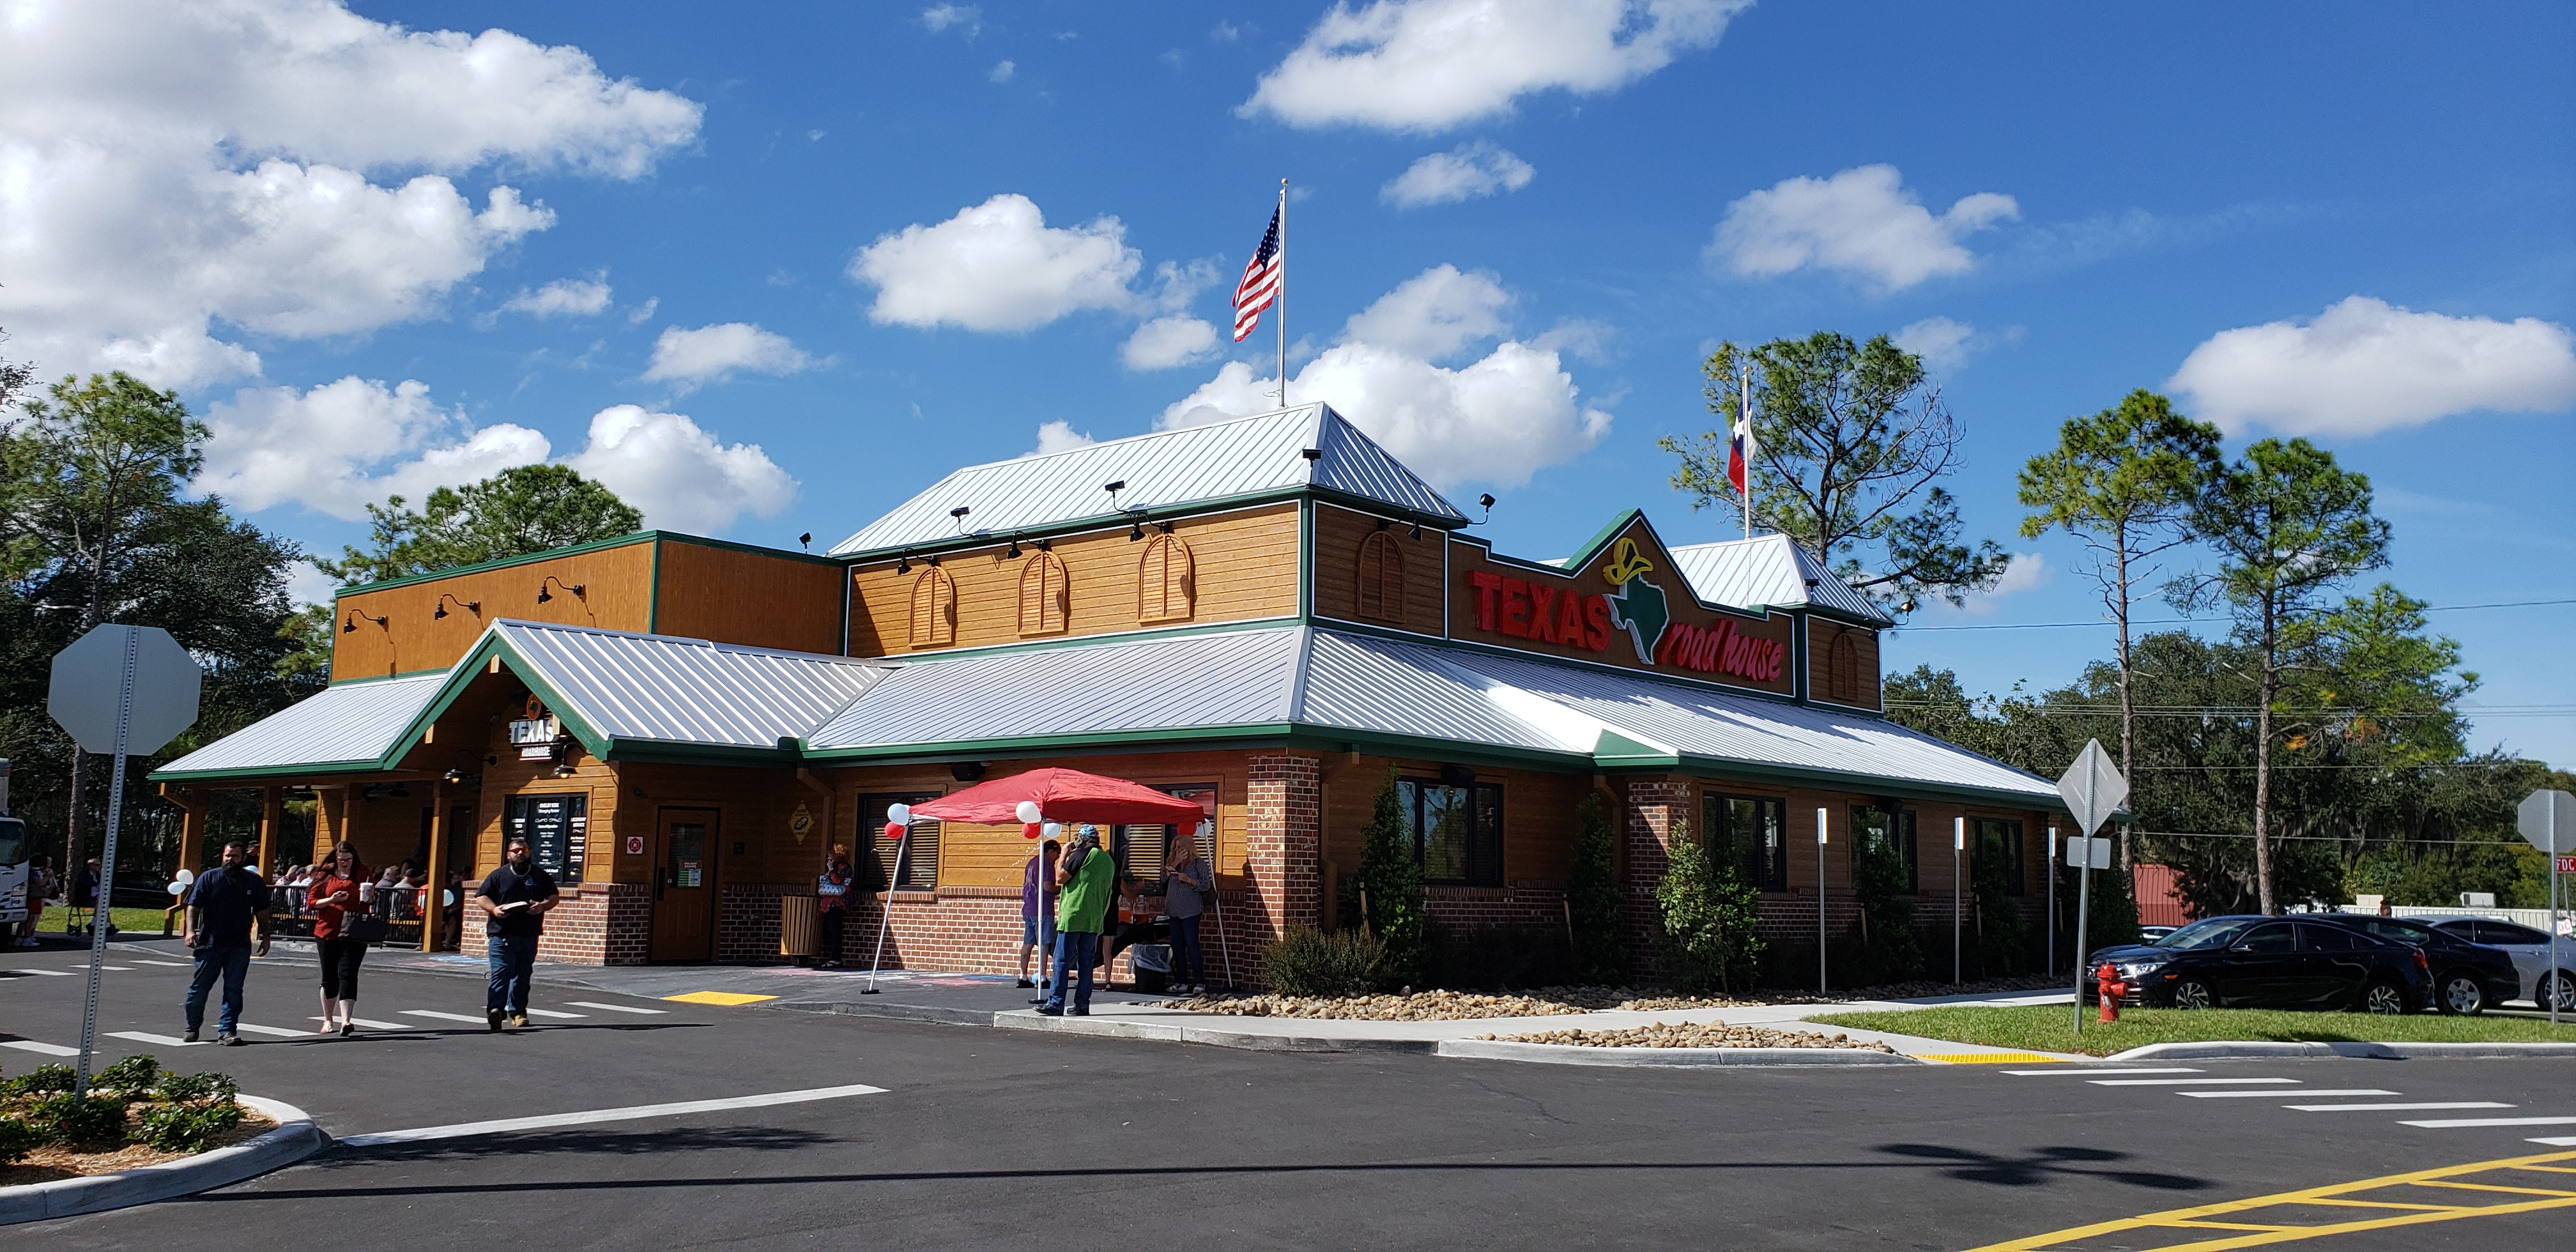 11-11-2019 Welcome Texas Roadhouse to Ocala, FL